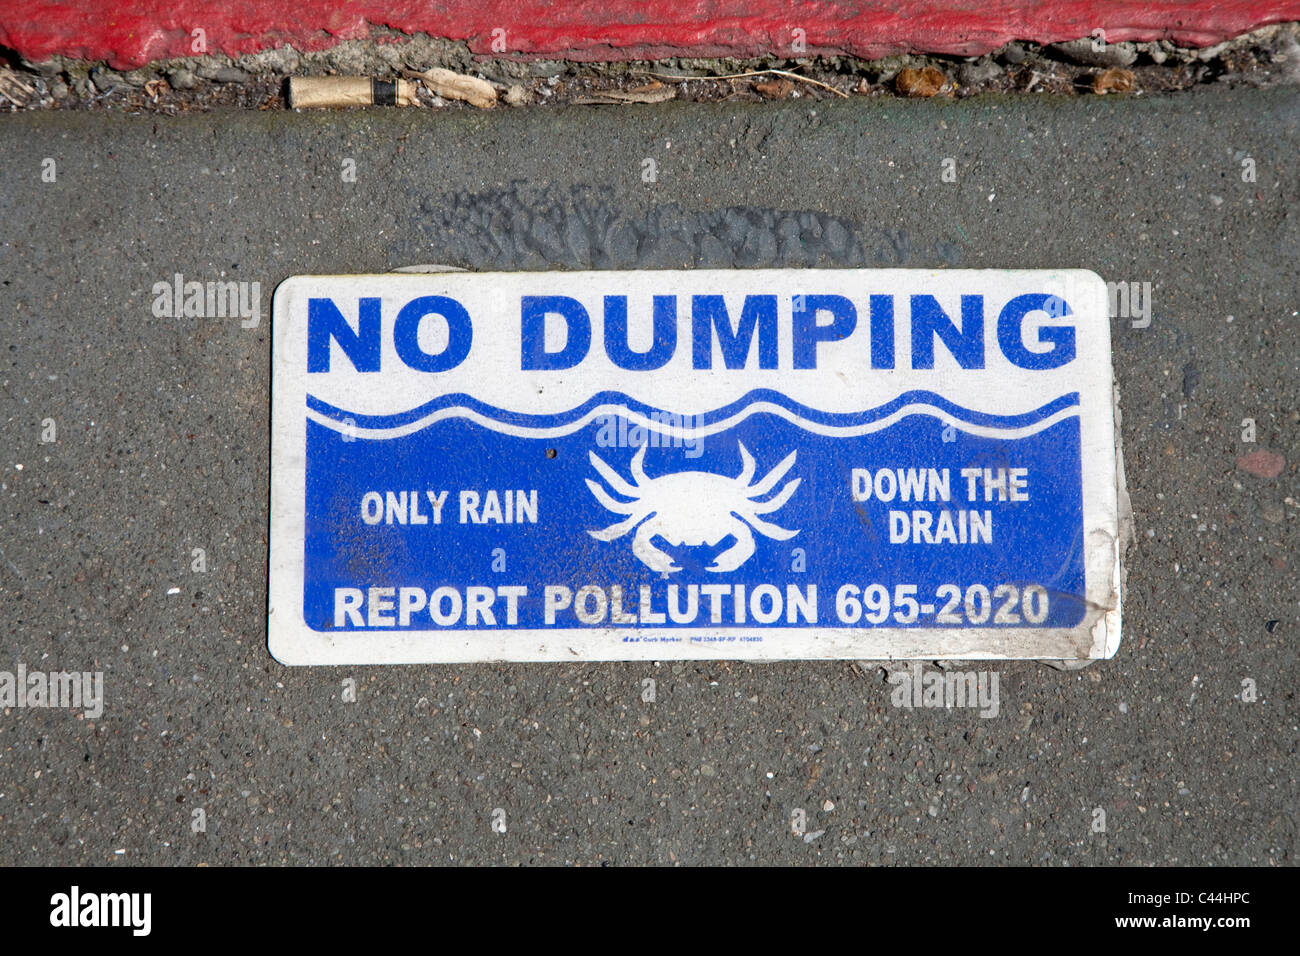 No dumping sign by drain close to bay in San Francisco - Stock Image